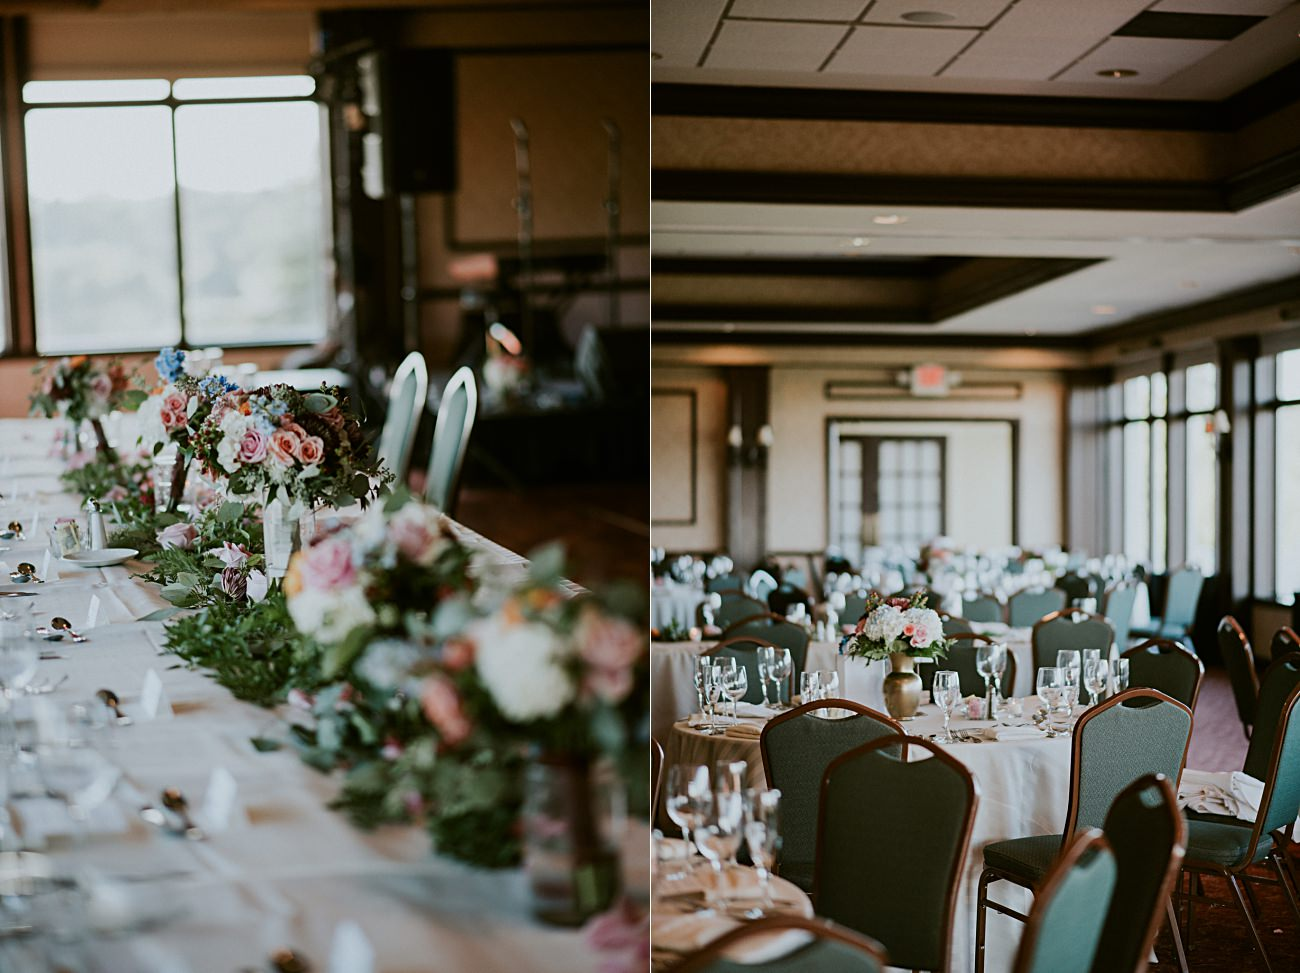 Blush Wedding Flowers, dinner by Candlelight, Geneva National Resort Wedding in Lake Geneva, Golf Course Wedding, Jewel Toned Wedding Dresses, Navy Suits for Groomsman - Lake Geneva Wisconsin Wedding Photographer - Natural Intuition Photography